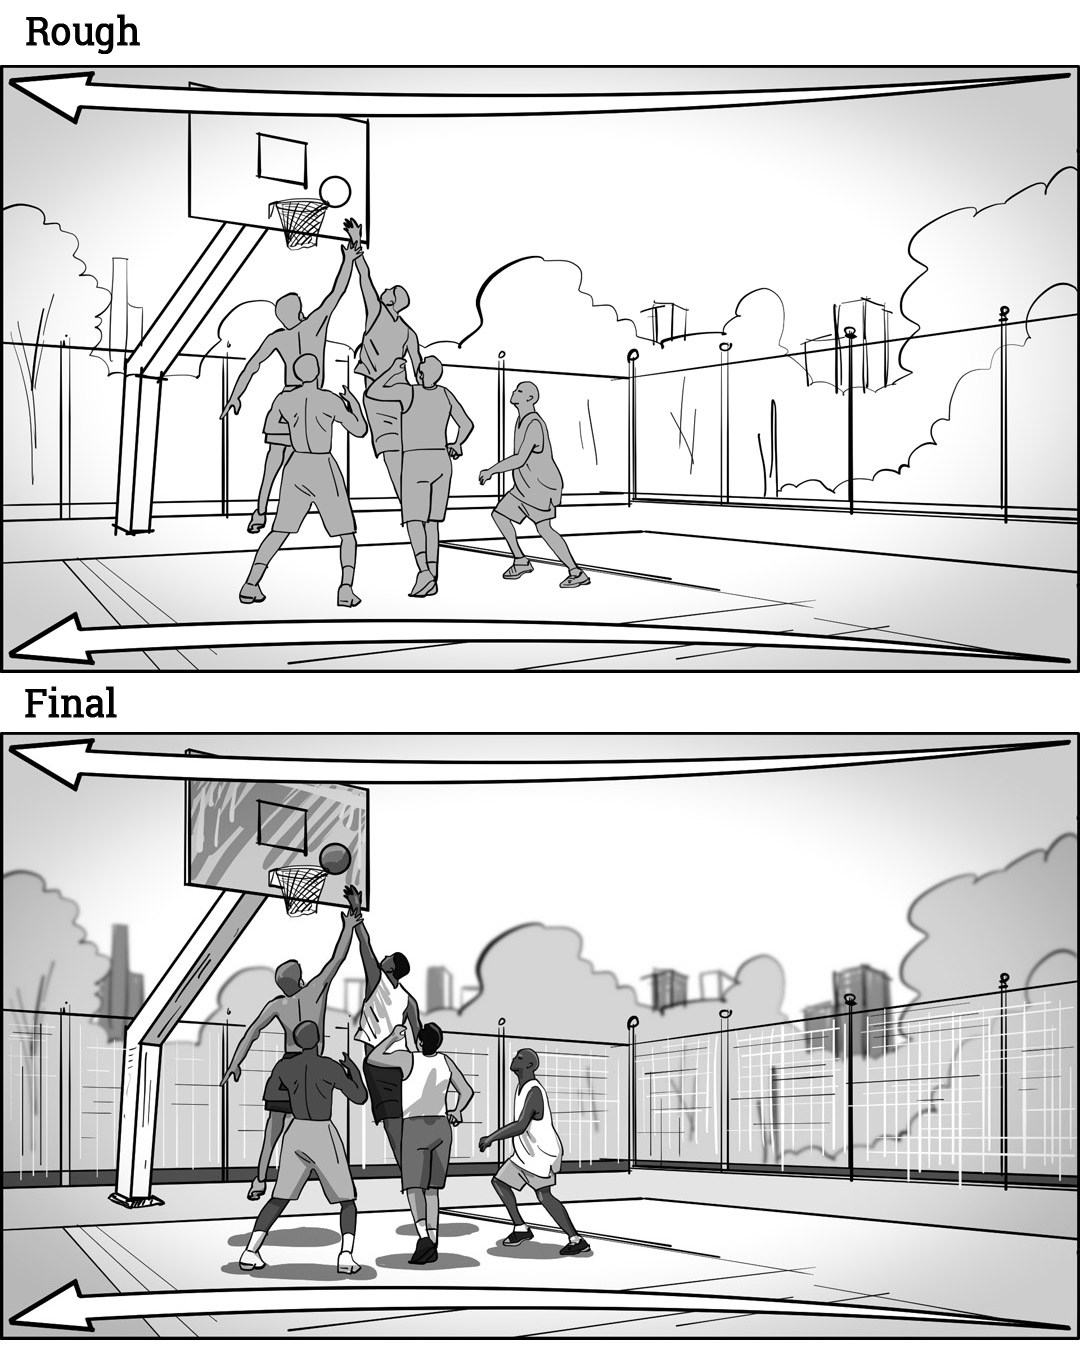 Storyboarding A Panning Shot: Brother-Mouzone-rough-final-18